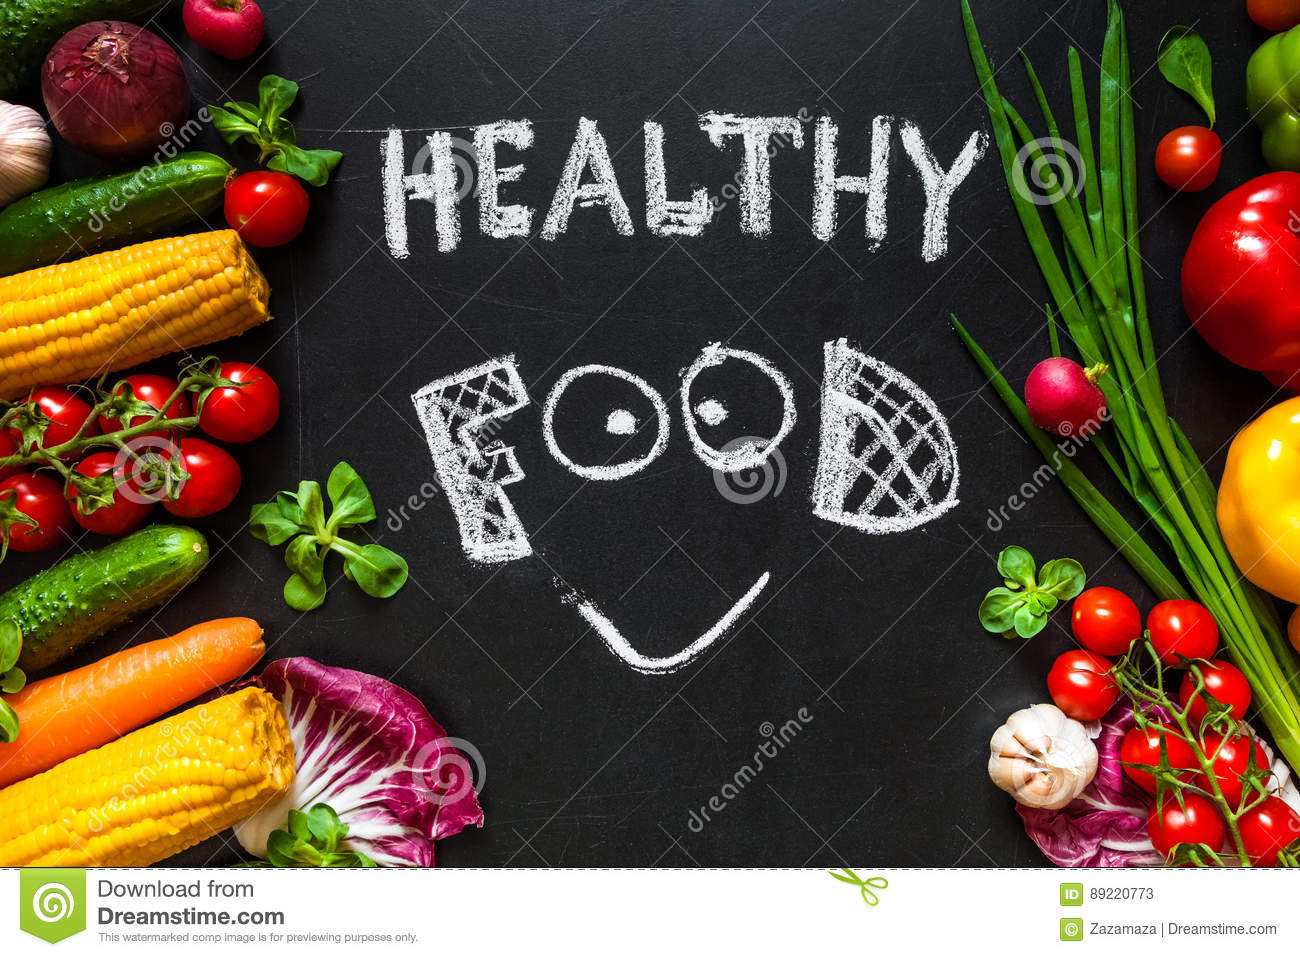 Healthy food concept with fresh vegetables for cooking.Title `Healthy food` with smile is written by chalk on the background